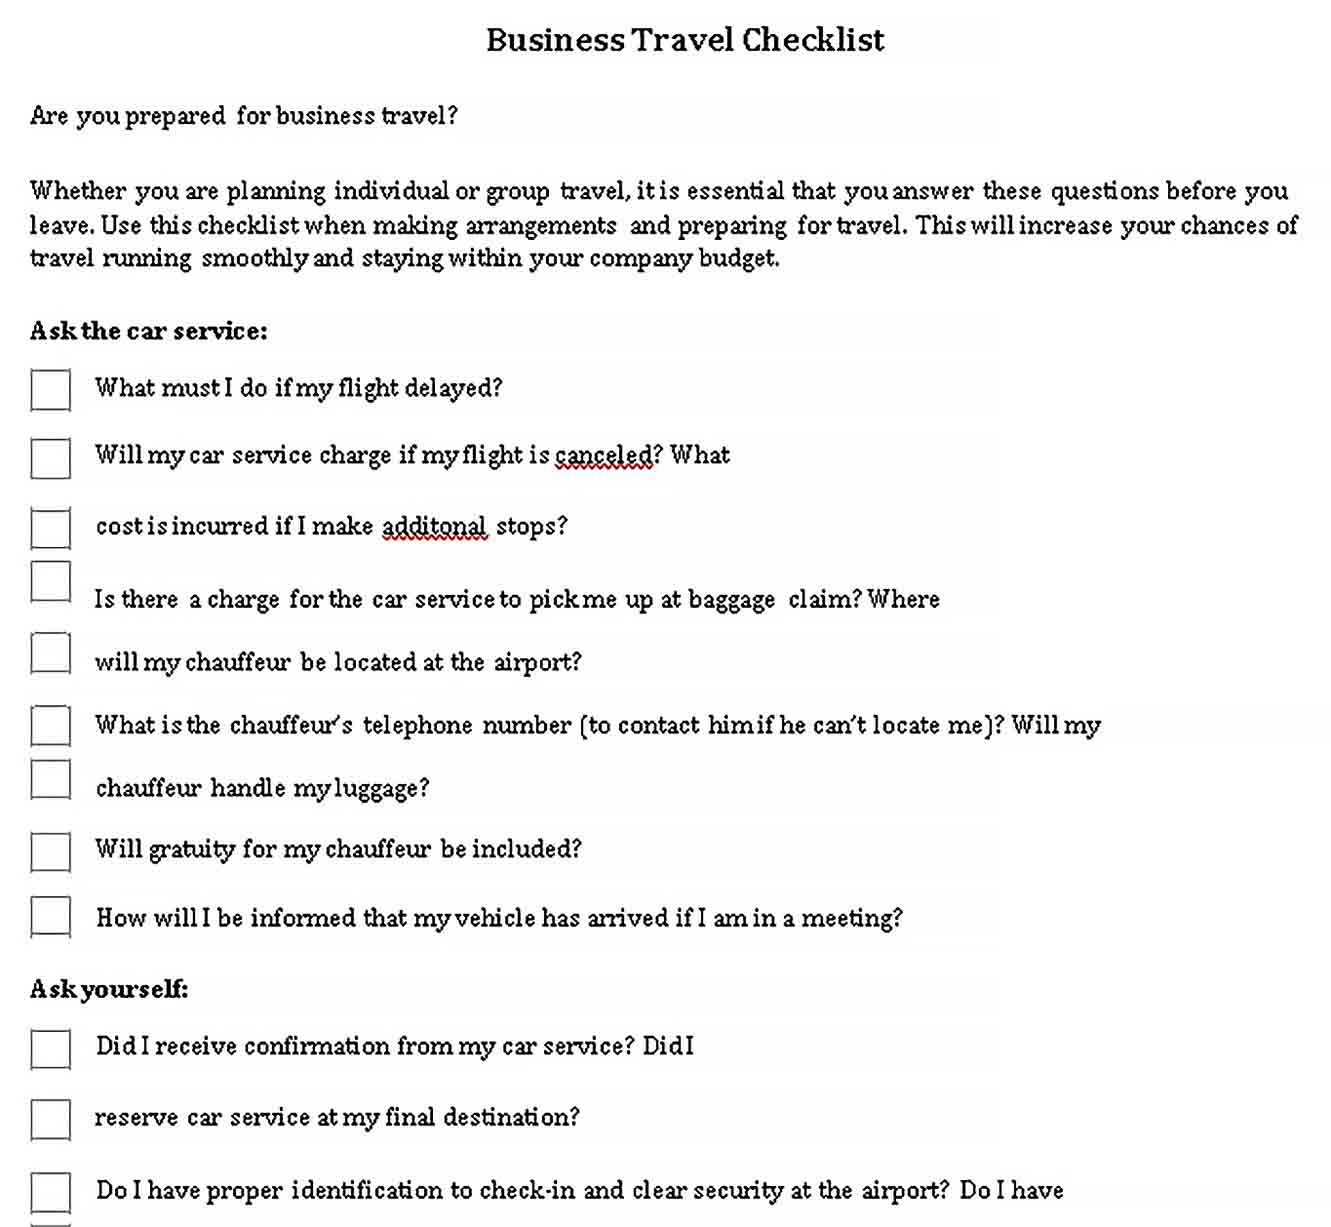 Template Business Travel Checklist